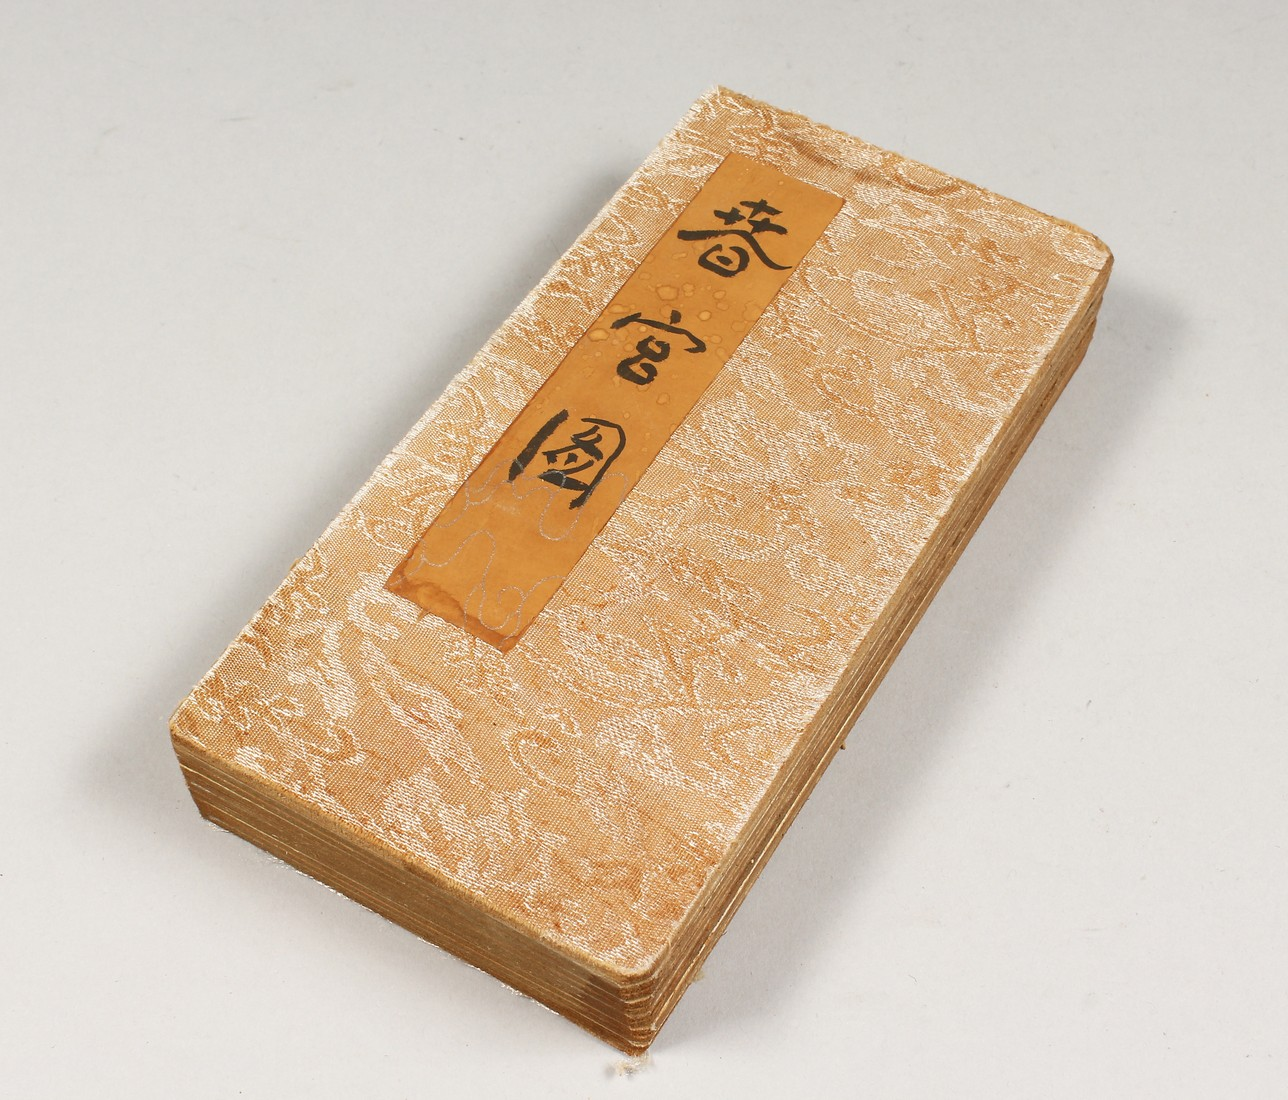 AN EROTIC CHINESE FOLDING BOOK.